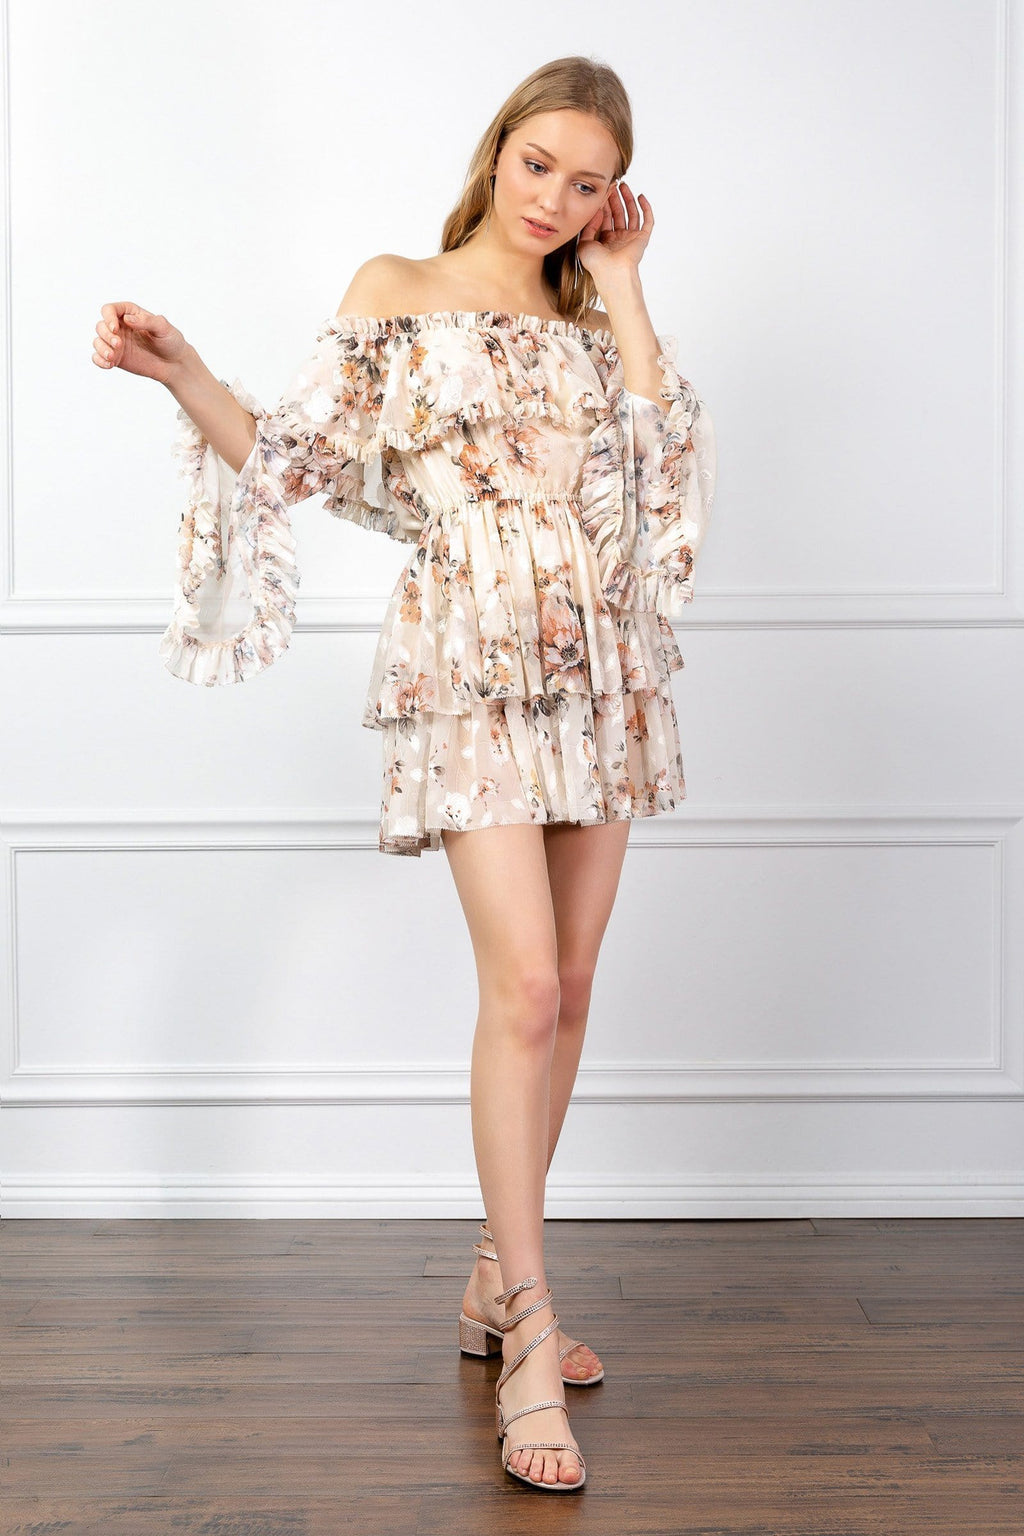 https://cdn.shopify.com/s/files/1/0015/5638/1732/files/Devendra_ruffle_Dress-VD.mp4?66159